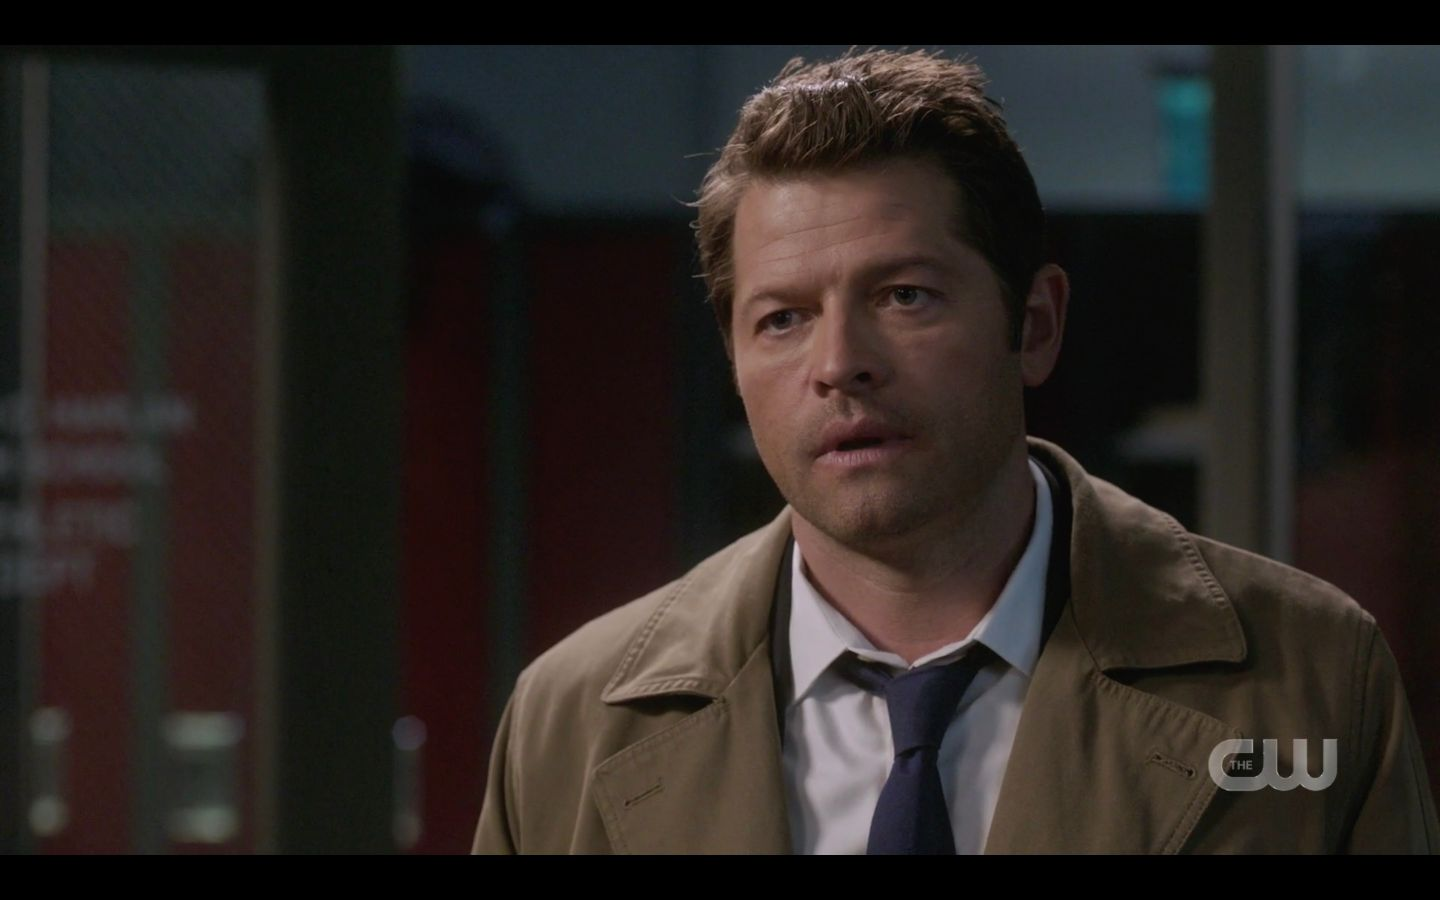 Castiel with Sam Dean Winchester free will argument